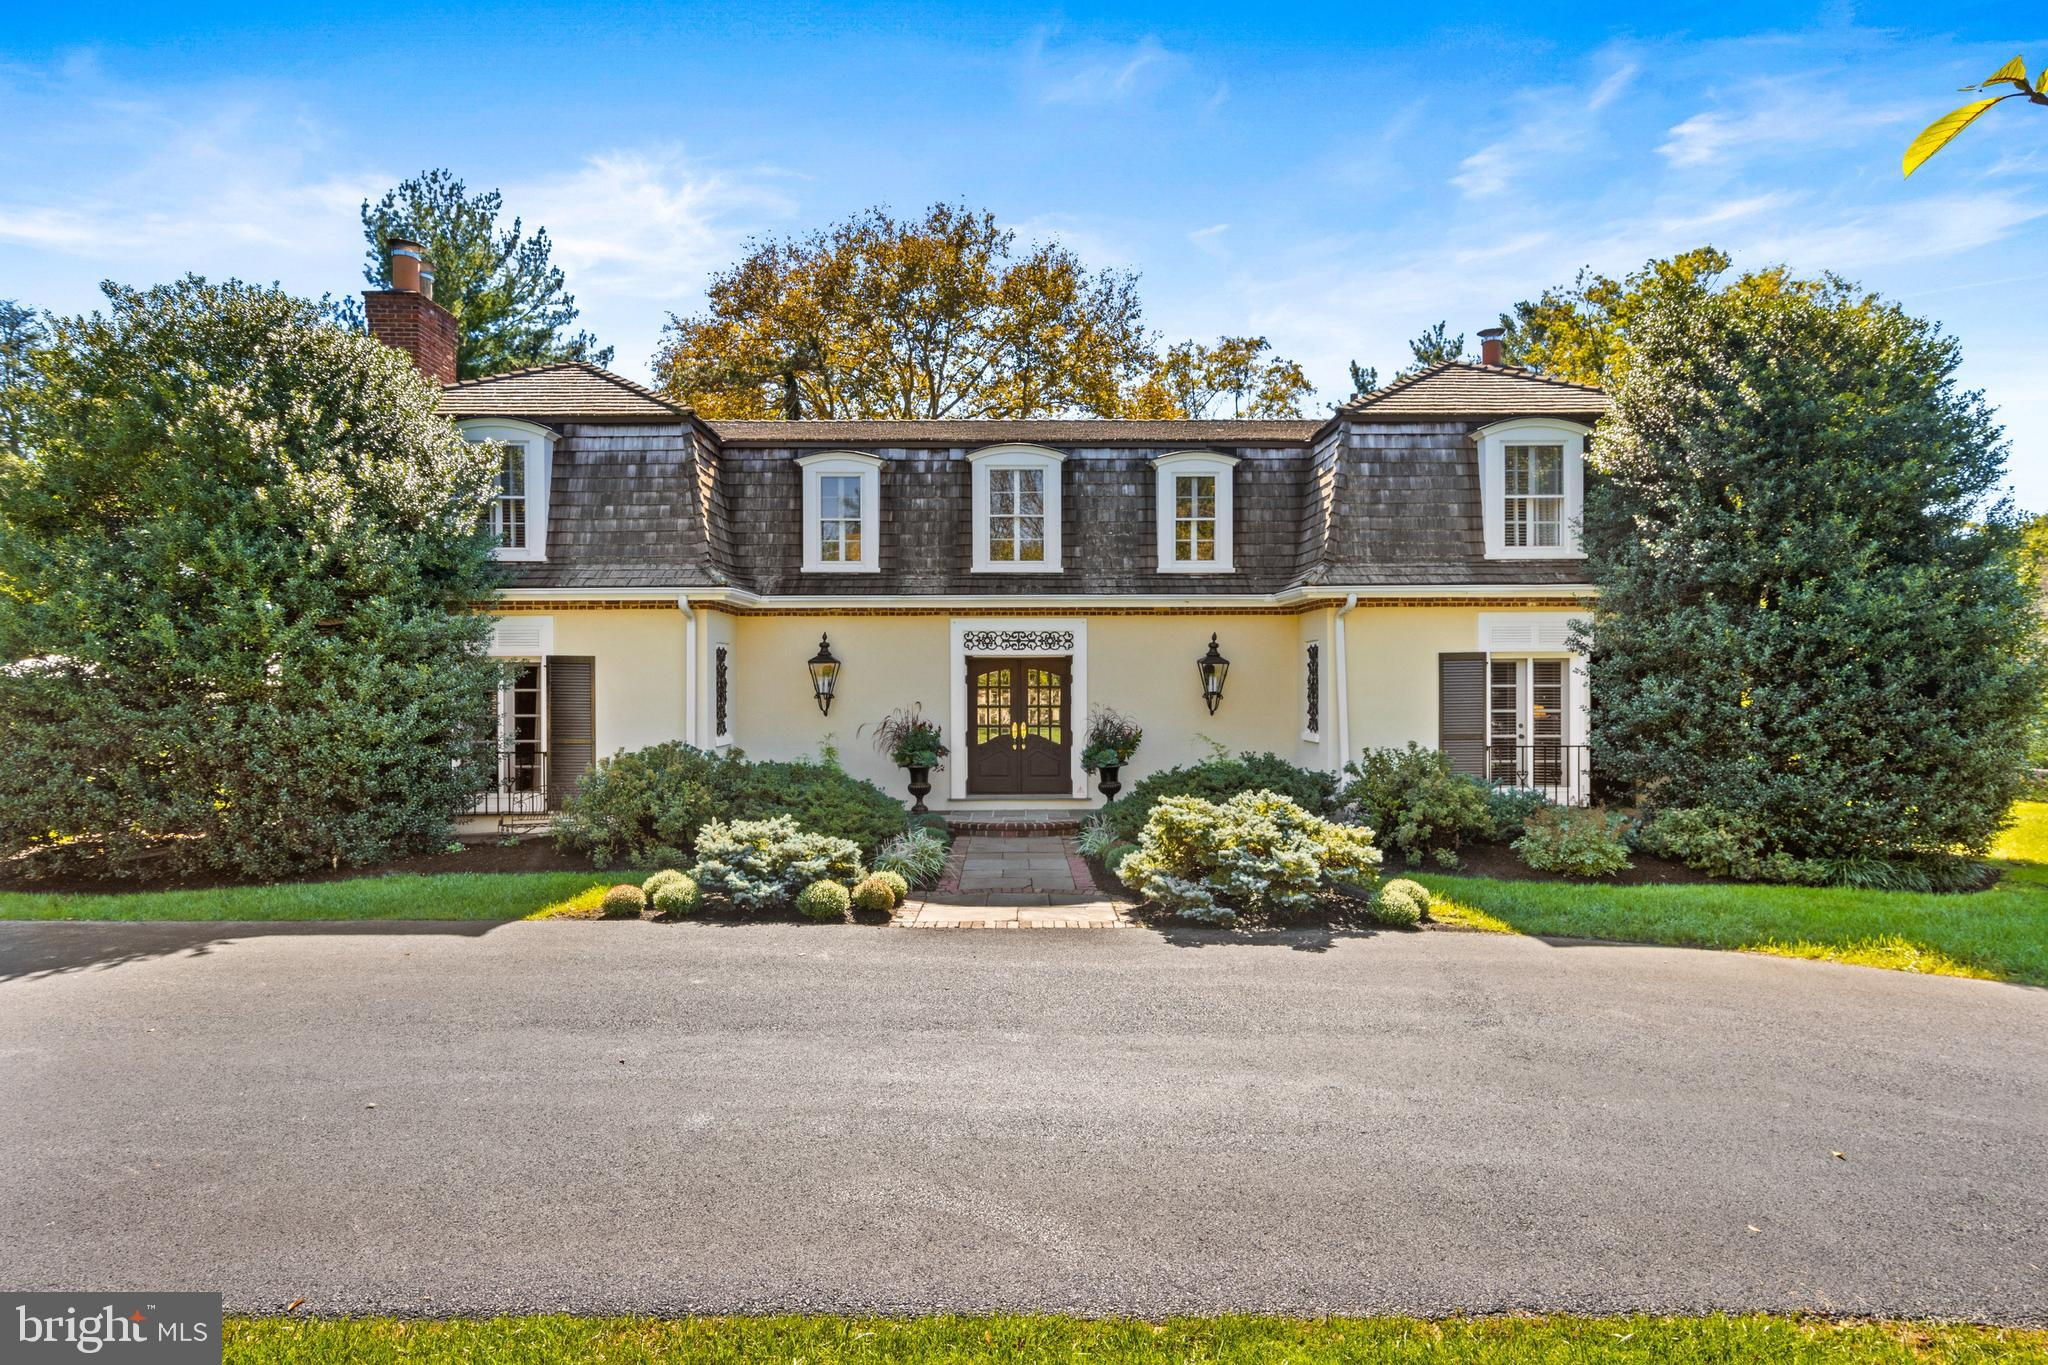 Elegant French Colonial home located on one of the most sought-after streets in Radnor Township. This gracious home is both stunning and charming with over 6,000 sq. ft of living space. Escape the city and find serenity in this ideal oasis for family living and working from home with two, separate designated office spaces, limitless indoor and outdoor living and entertaining spaces in a highly walkable neighborhood.  Very rare all 5 bedrooms and 5.1 full baths are on the same floor, perfect for larger or extended families. Dramatic custom split staircase and two-story foyer, gleaming hardwood floors, eat-in kitchen with stainless steel appliances with beautiful views of the pool and exterior spaces.  Living room with fireplace and French doors to the large patio, large, formal dining room, perfect for entertaining. Family room with fireplace, perfectly located next to the kitchen.  The expansive second floor features all 5 bedrooms and baths and a bonus great room with vaulted ceiling. The primary bedroom is highlighted by a new, marble bathroom and separate dressing area.  Every sun-filled bedroom is generously sized with renovated/updated bathrooms. In-ground, heated pool, expansive patio with new awning, circular driveway, 3-car garage. An unbeatable Main Line location situated in the award-winning Radnor Township School District near shops, restaurants, and the Radnor nature trail.  Close to 76, a quick drive to Center City or the airport.